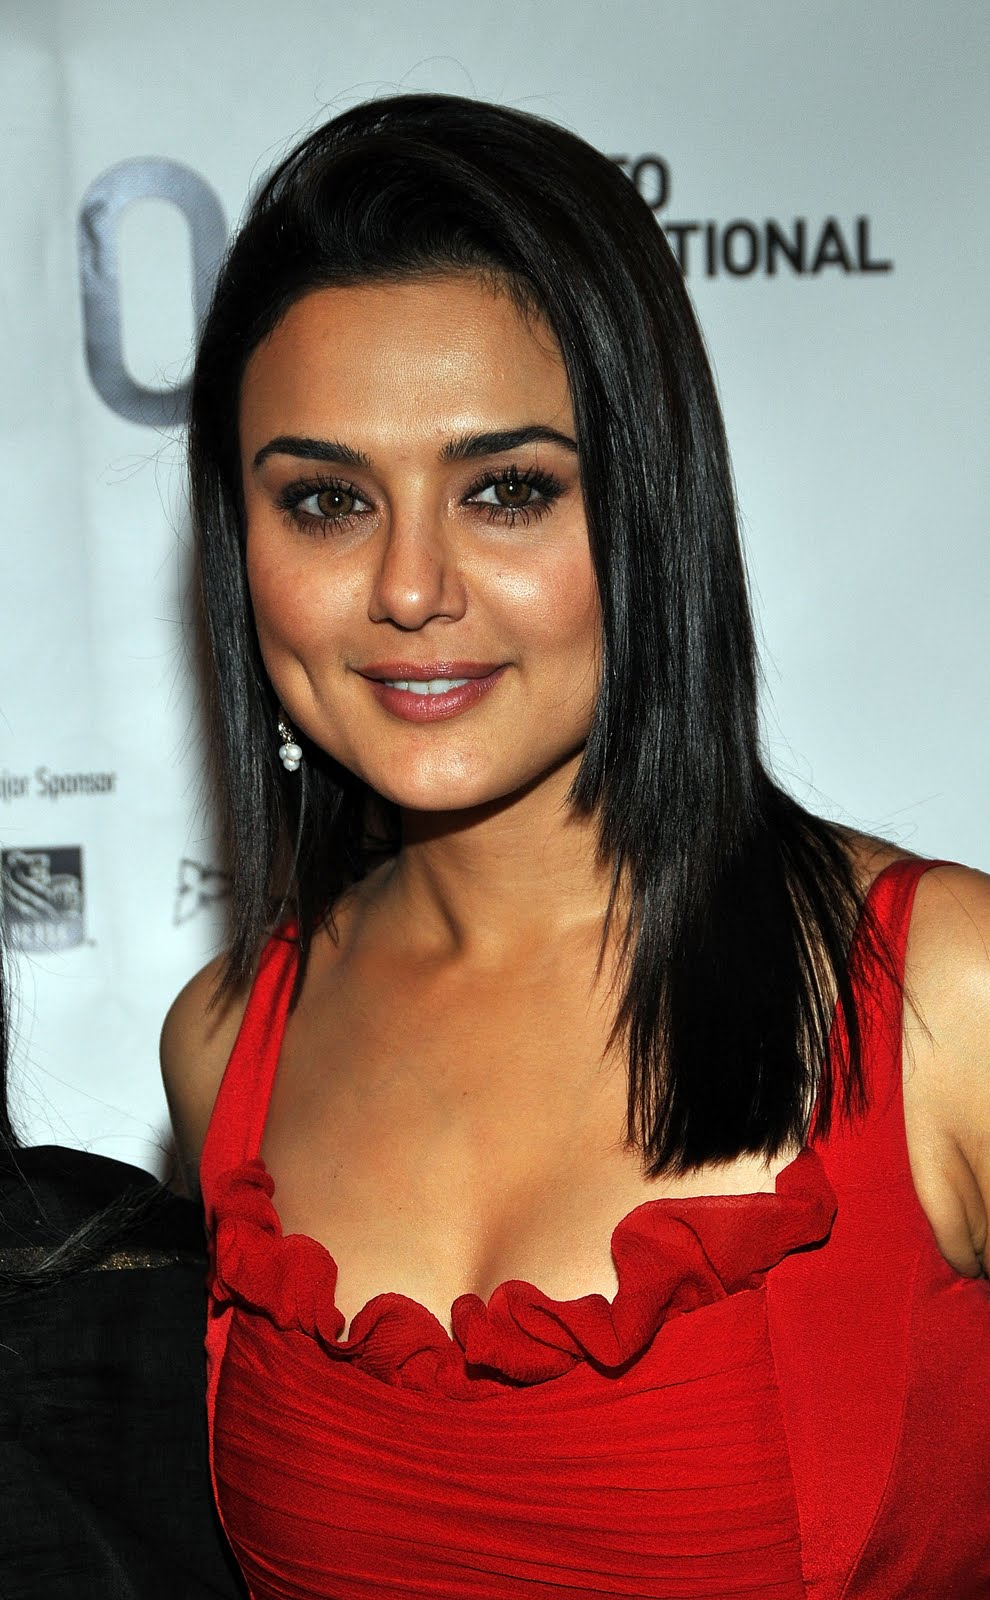 http://3.bp.blogspot.com/-x-d4rsmzkO8/TkqqfsGIMbI/AAAAAAAAFFk/GeZkUKuw6Fo/s1600/Preity-Zinta-at-Heaven-On-Earth-Premiere-.jpg